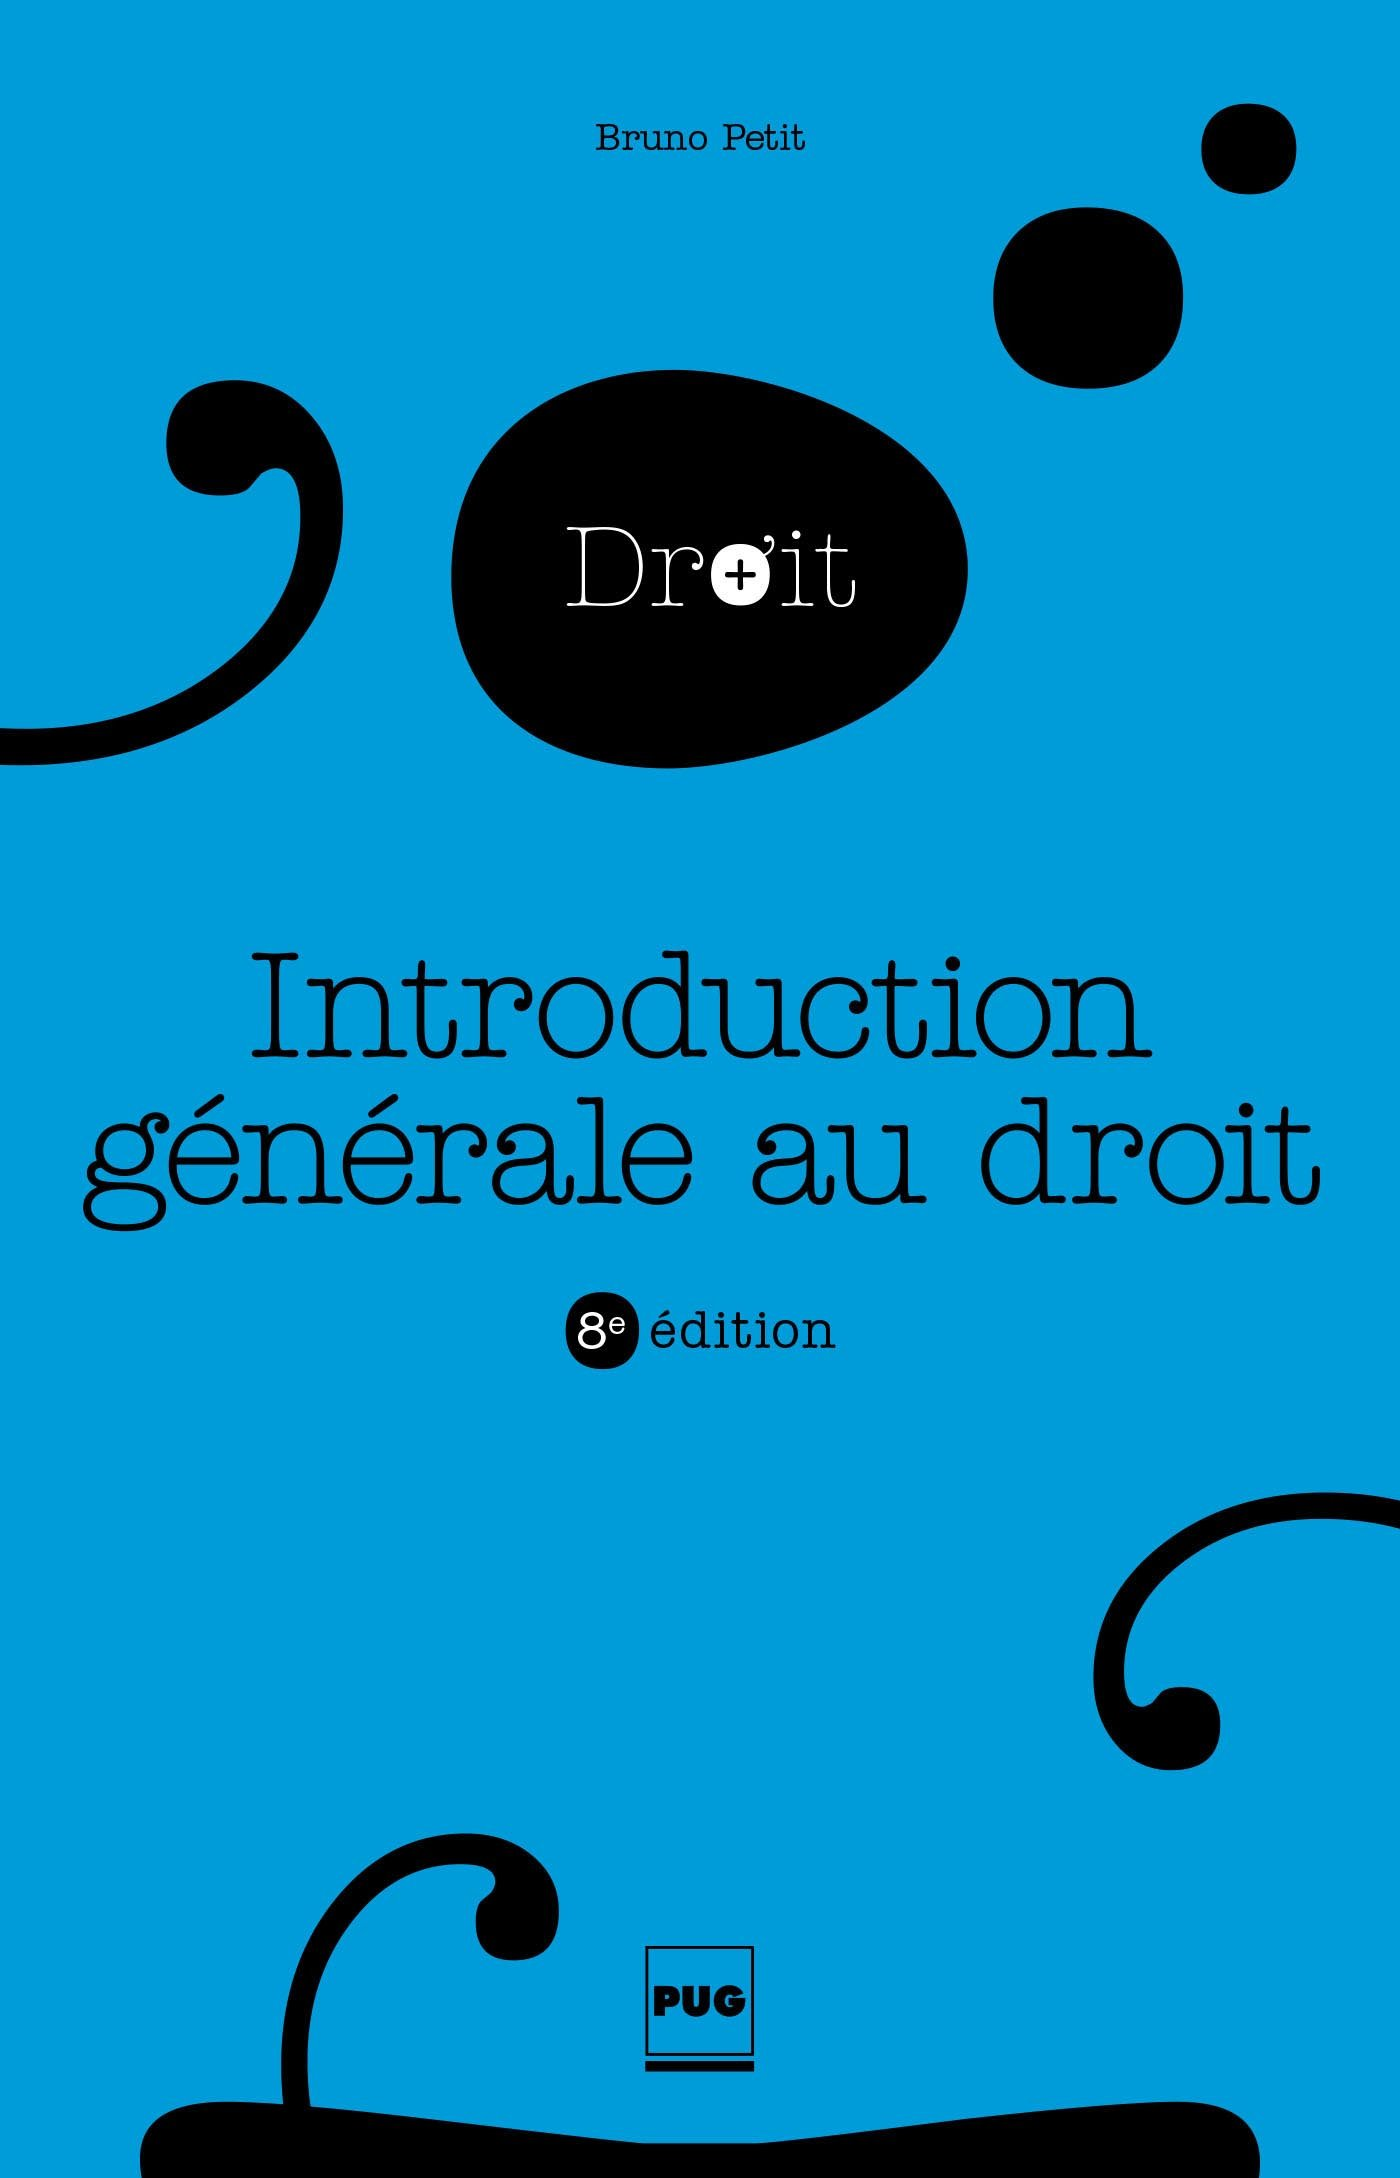 introductiongeneraleaudroit.jpg